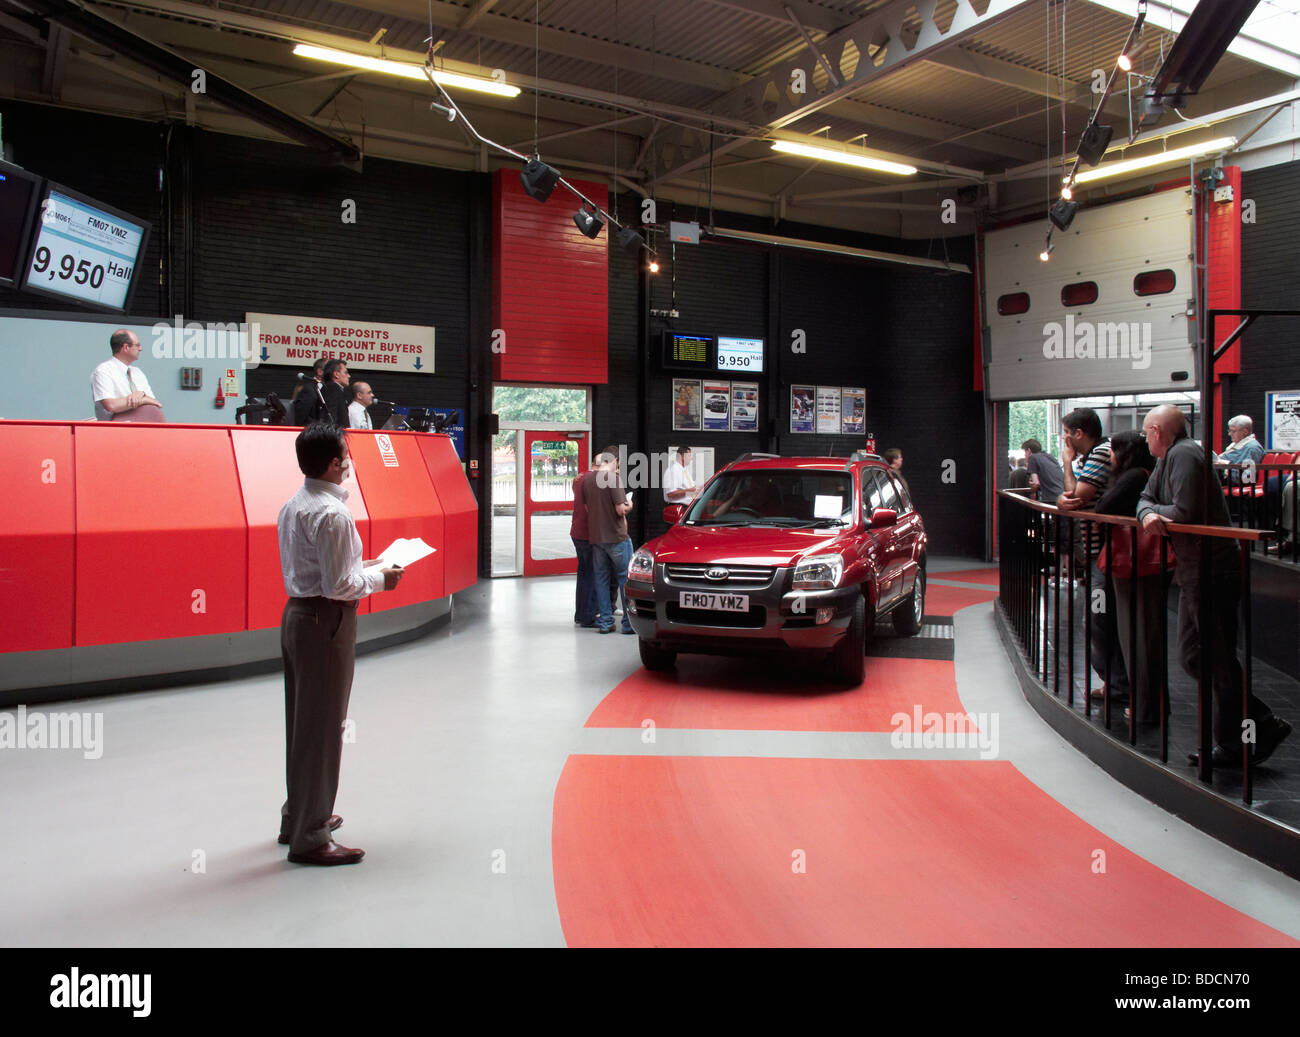 Sale room at British Car Auctions (BCA) site in Brighouse with ...